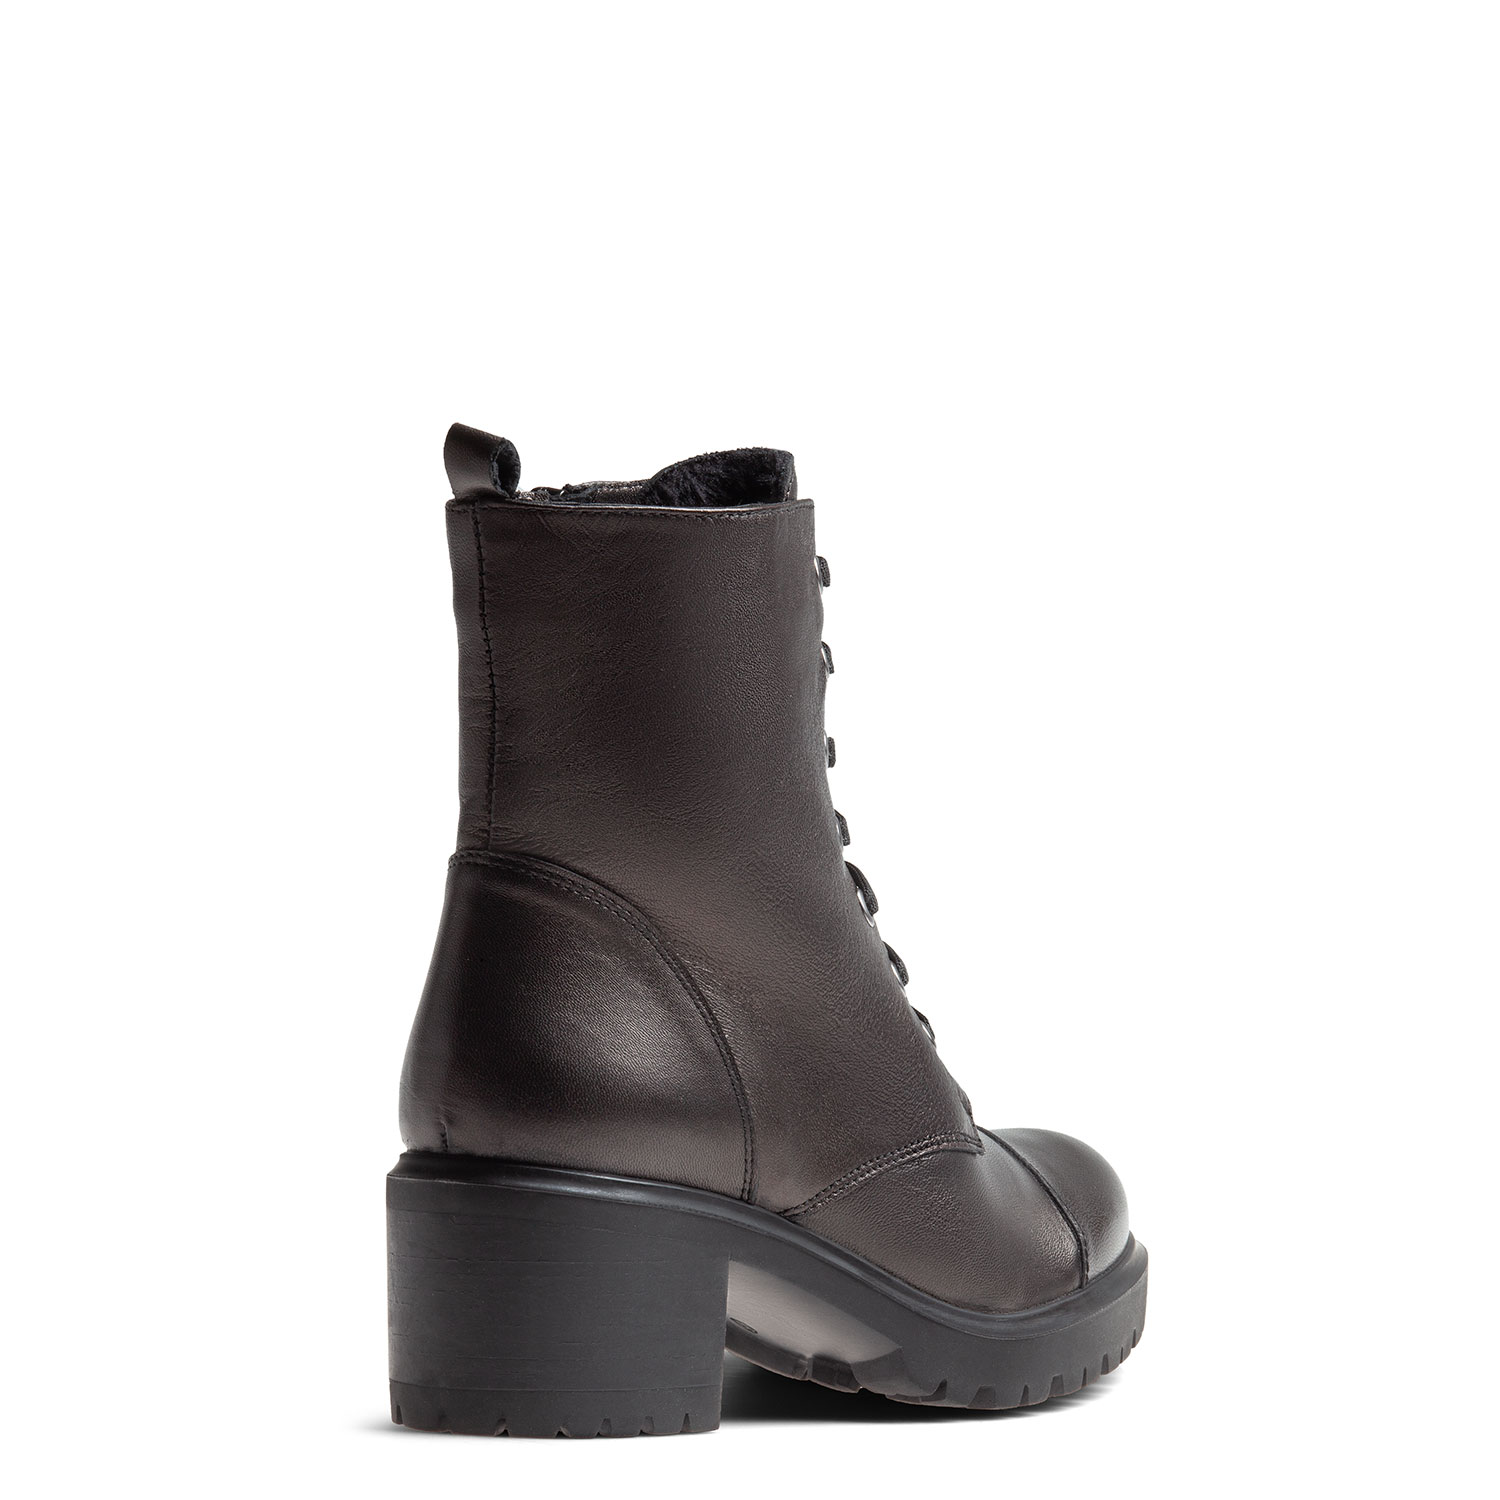 Women's ankle boots PAZOLINI VG-X5261-9